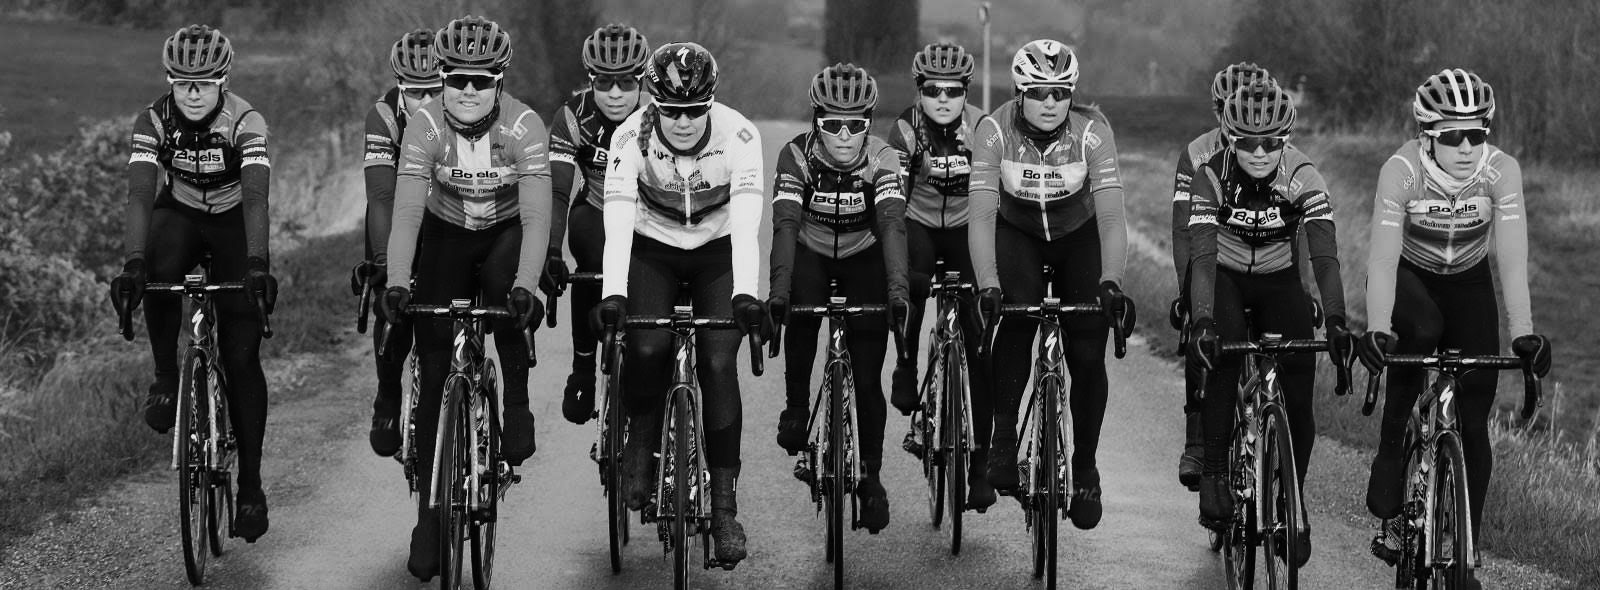 Vanguard Sponsorship - Boels Dolmans cycling team